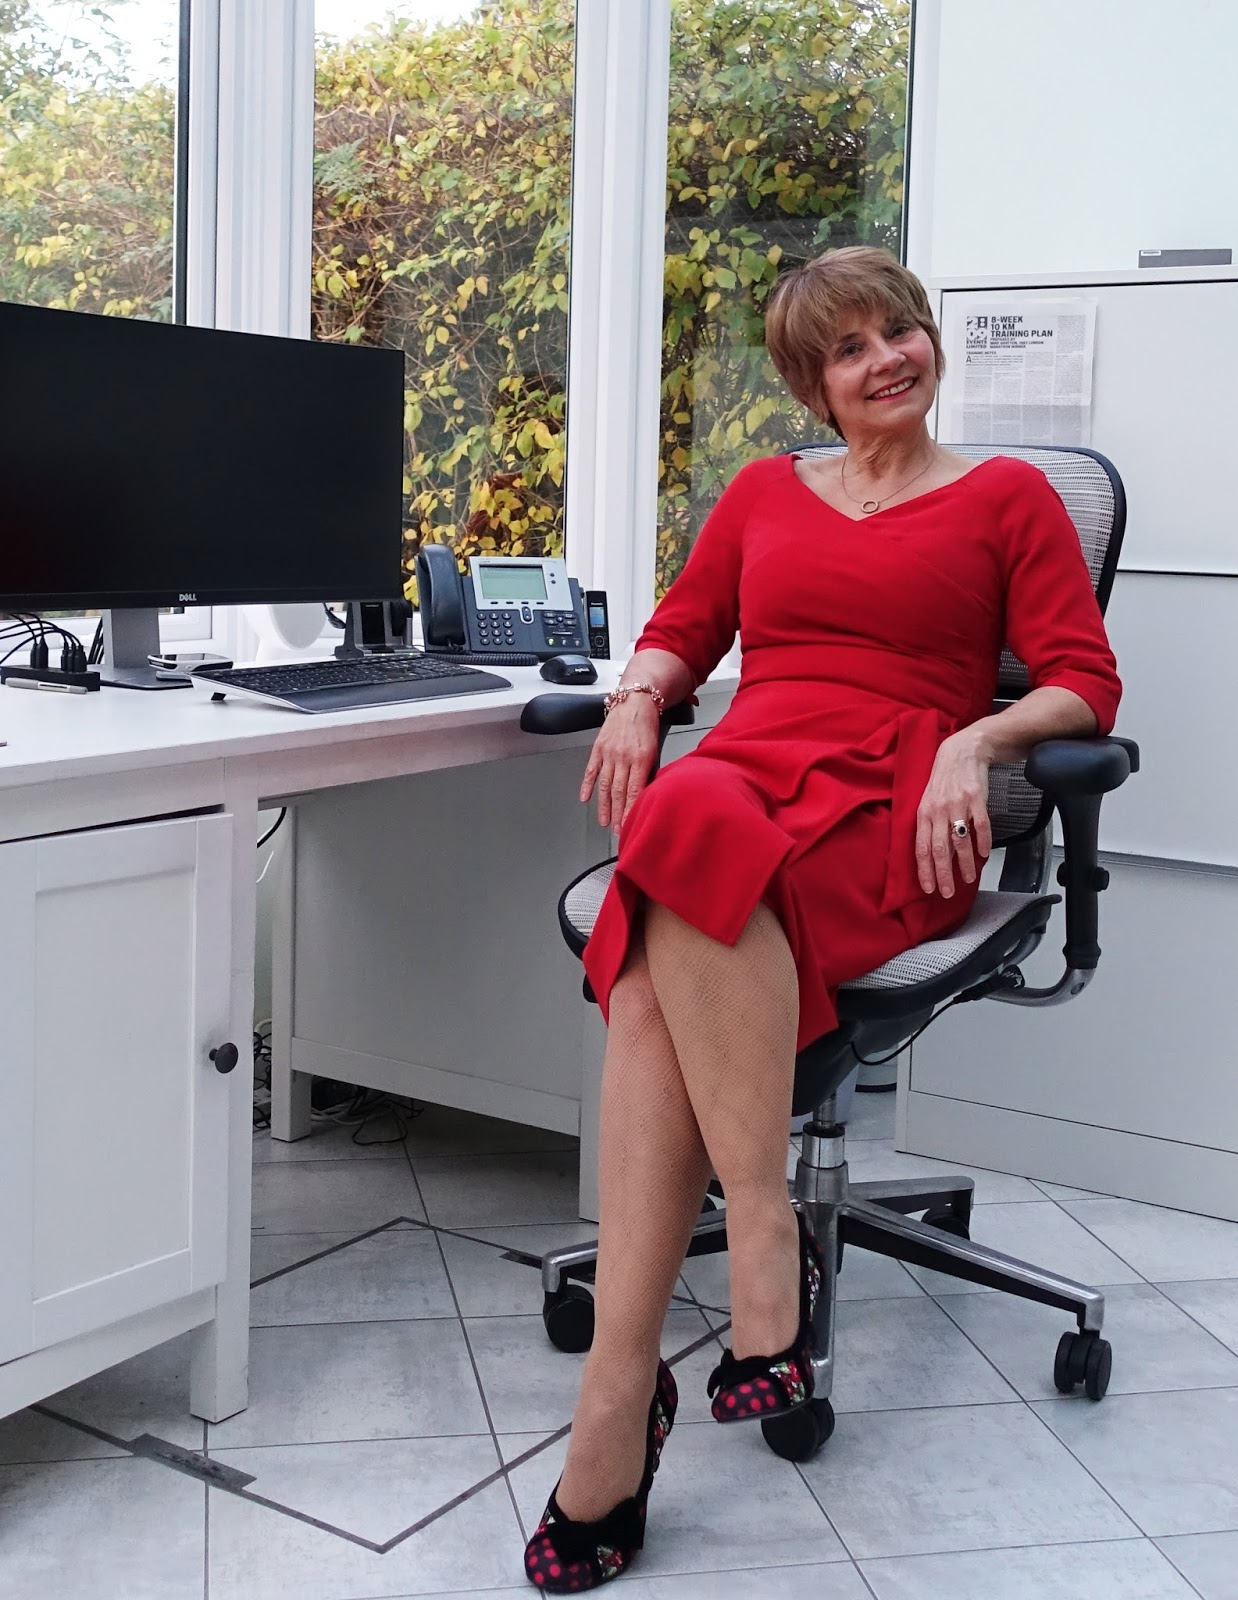 Image showing a 50 plus woman in a white conservatory wearing a red Bombshell dress, nude fishnet tights and red and black Poetic Licence shoes